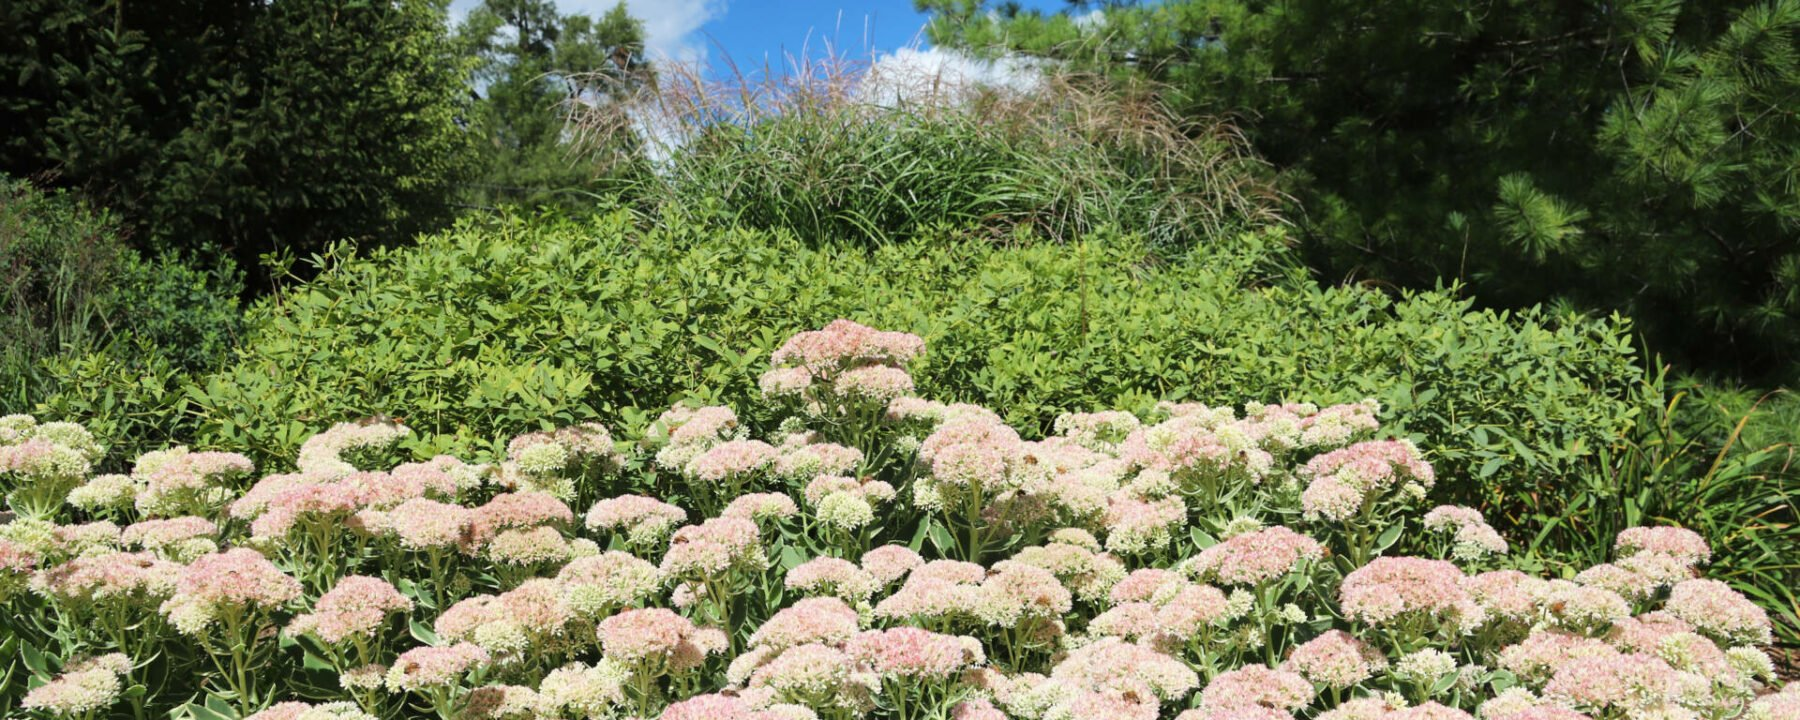 Enjoy the Fall landscape with plants from Flowerland